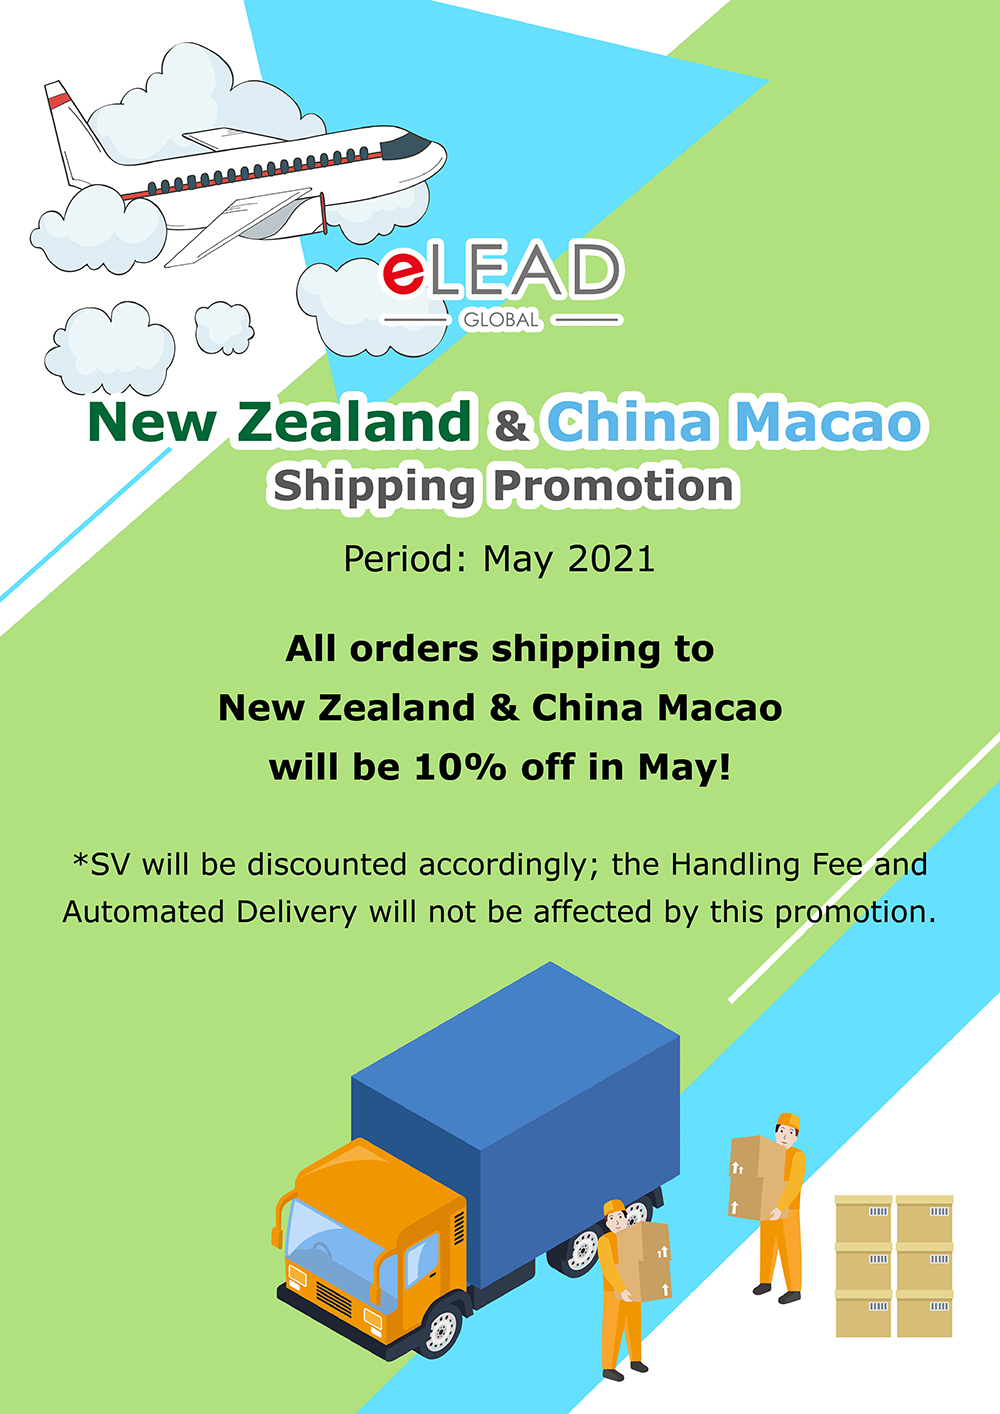 New Zealand & China Macao Shipping Promotion